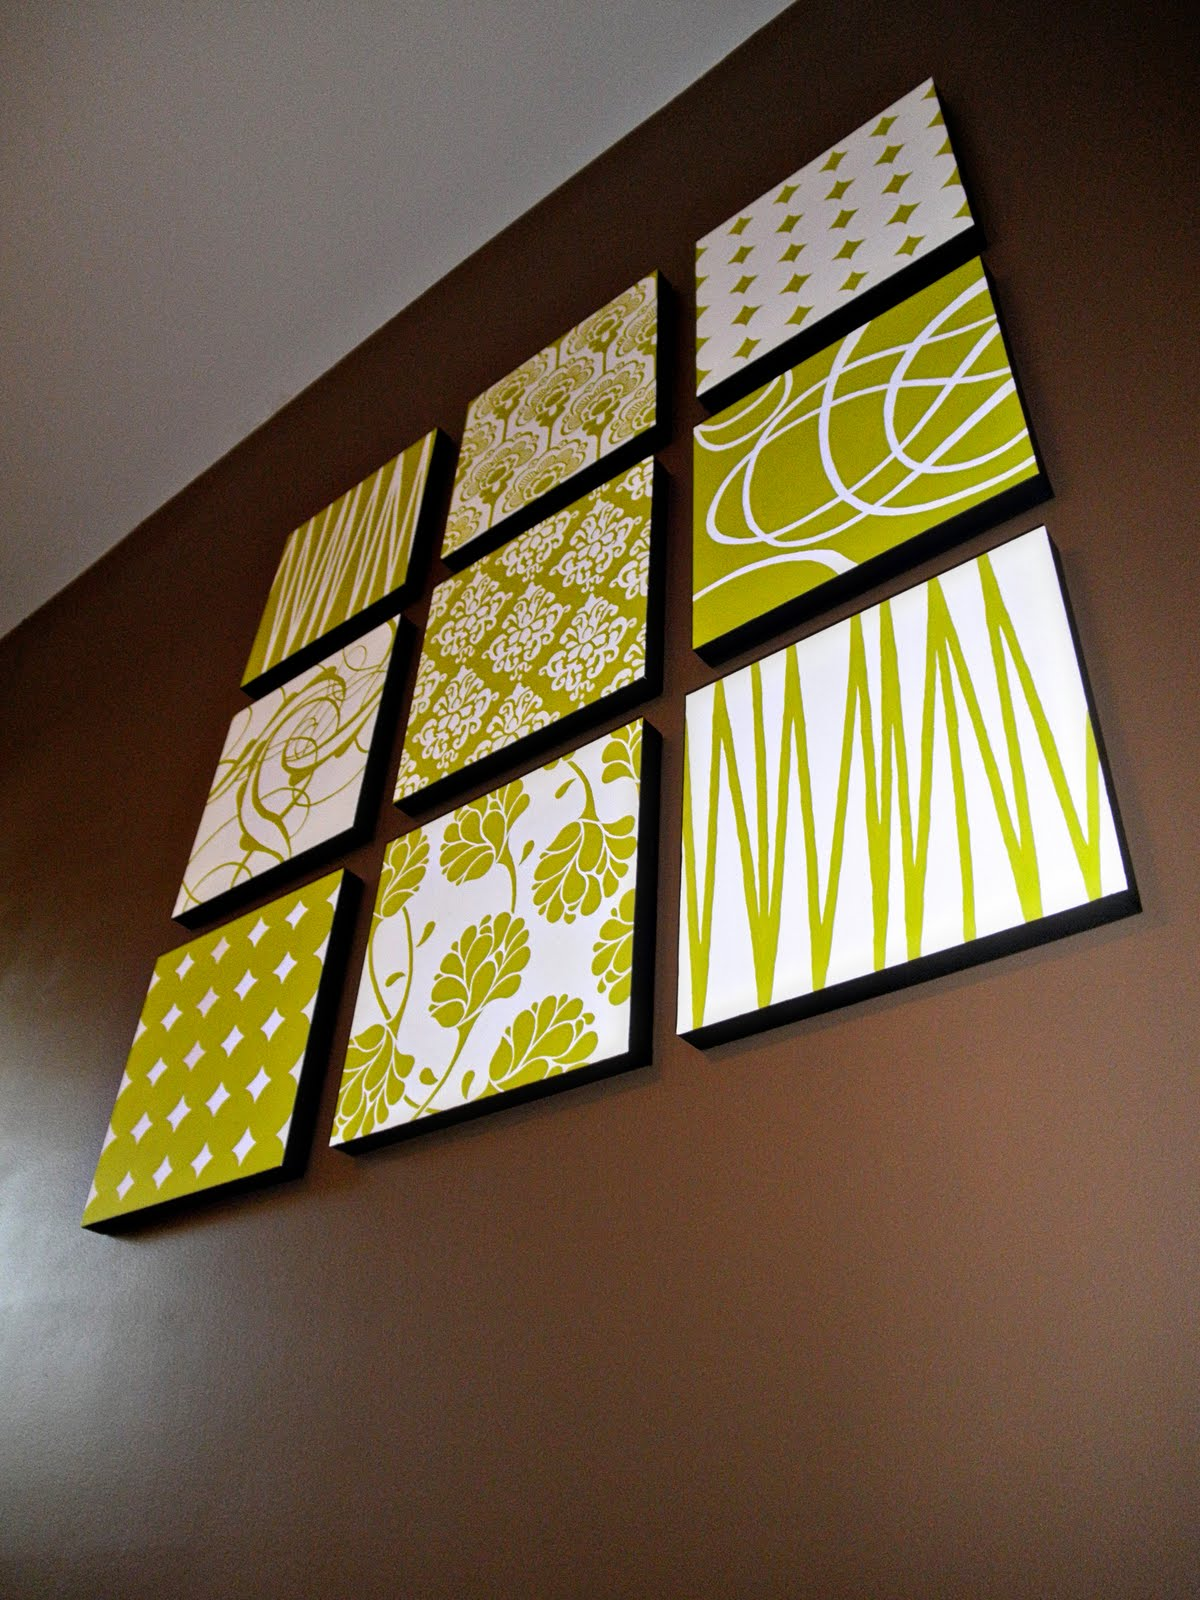 Shenanigans: Guest Post and Tutorial- Amazing Wall Art!